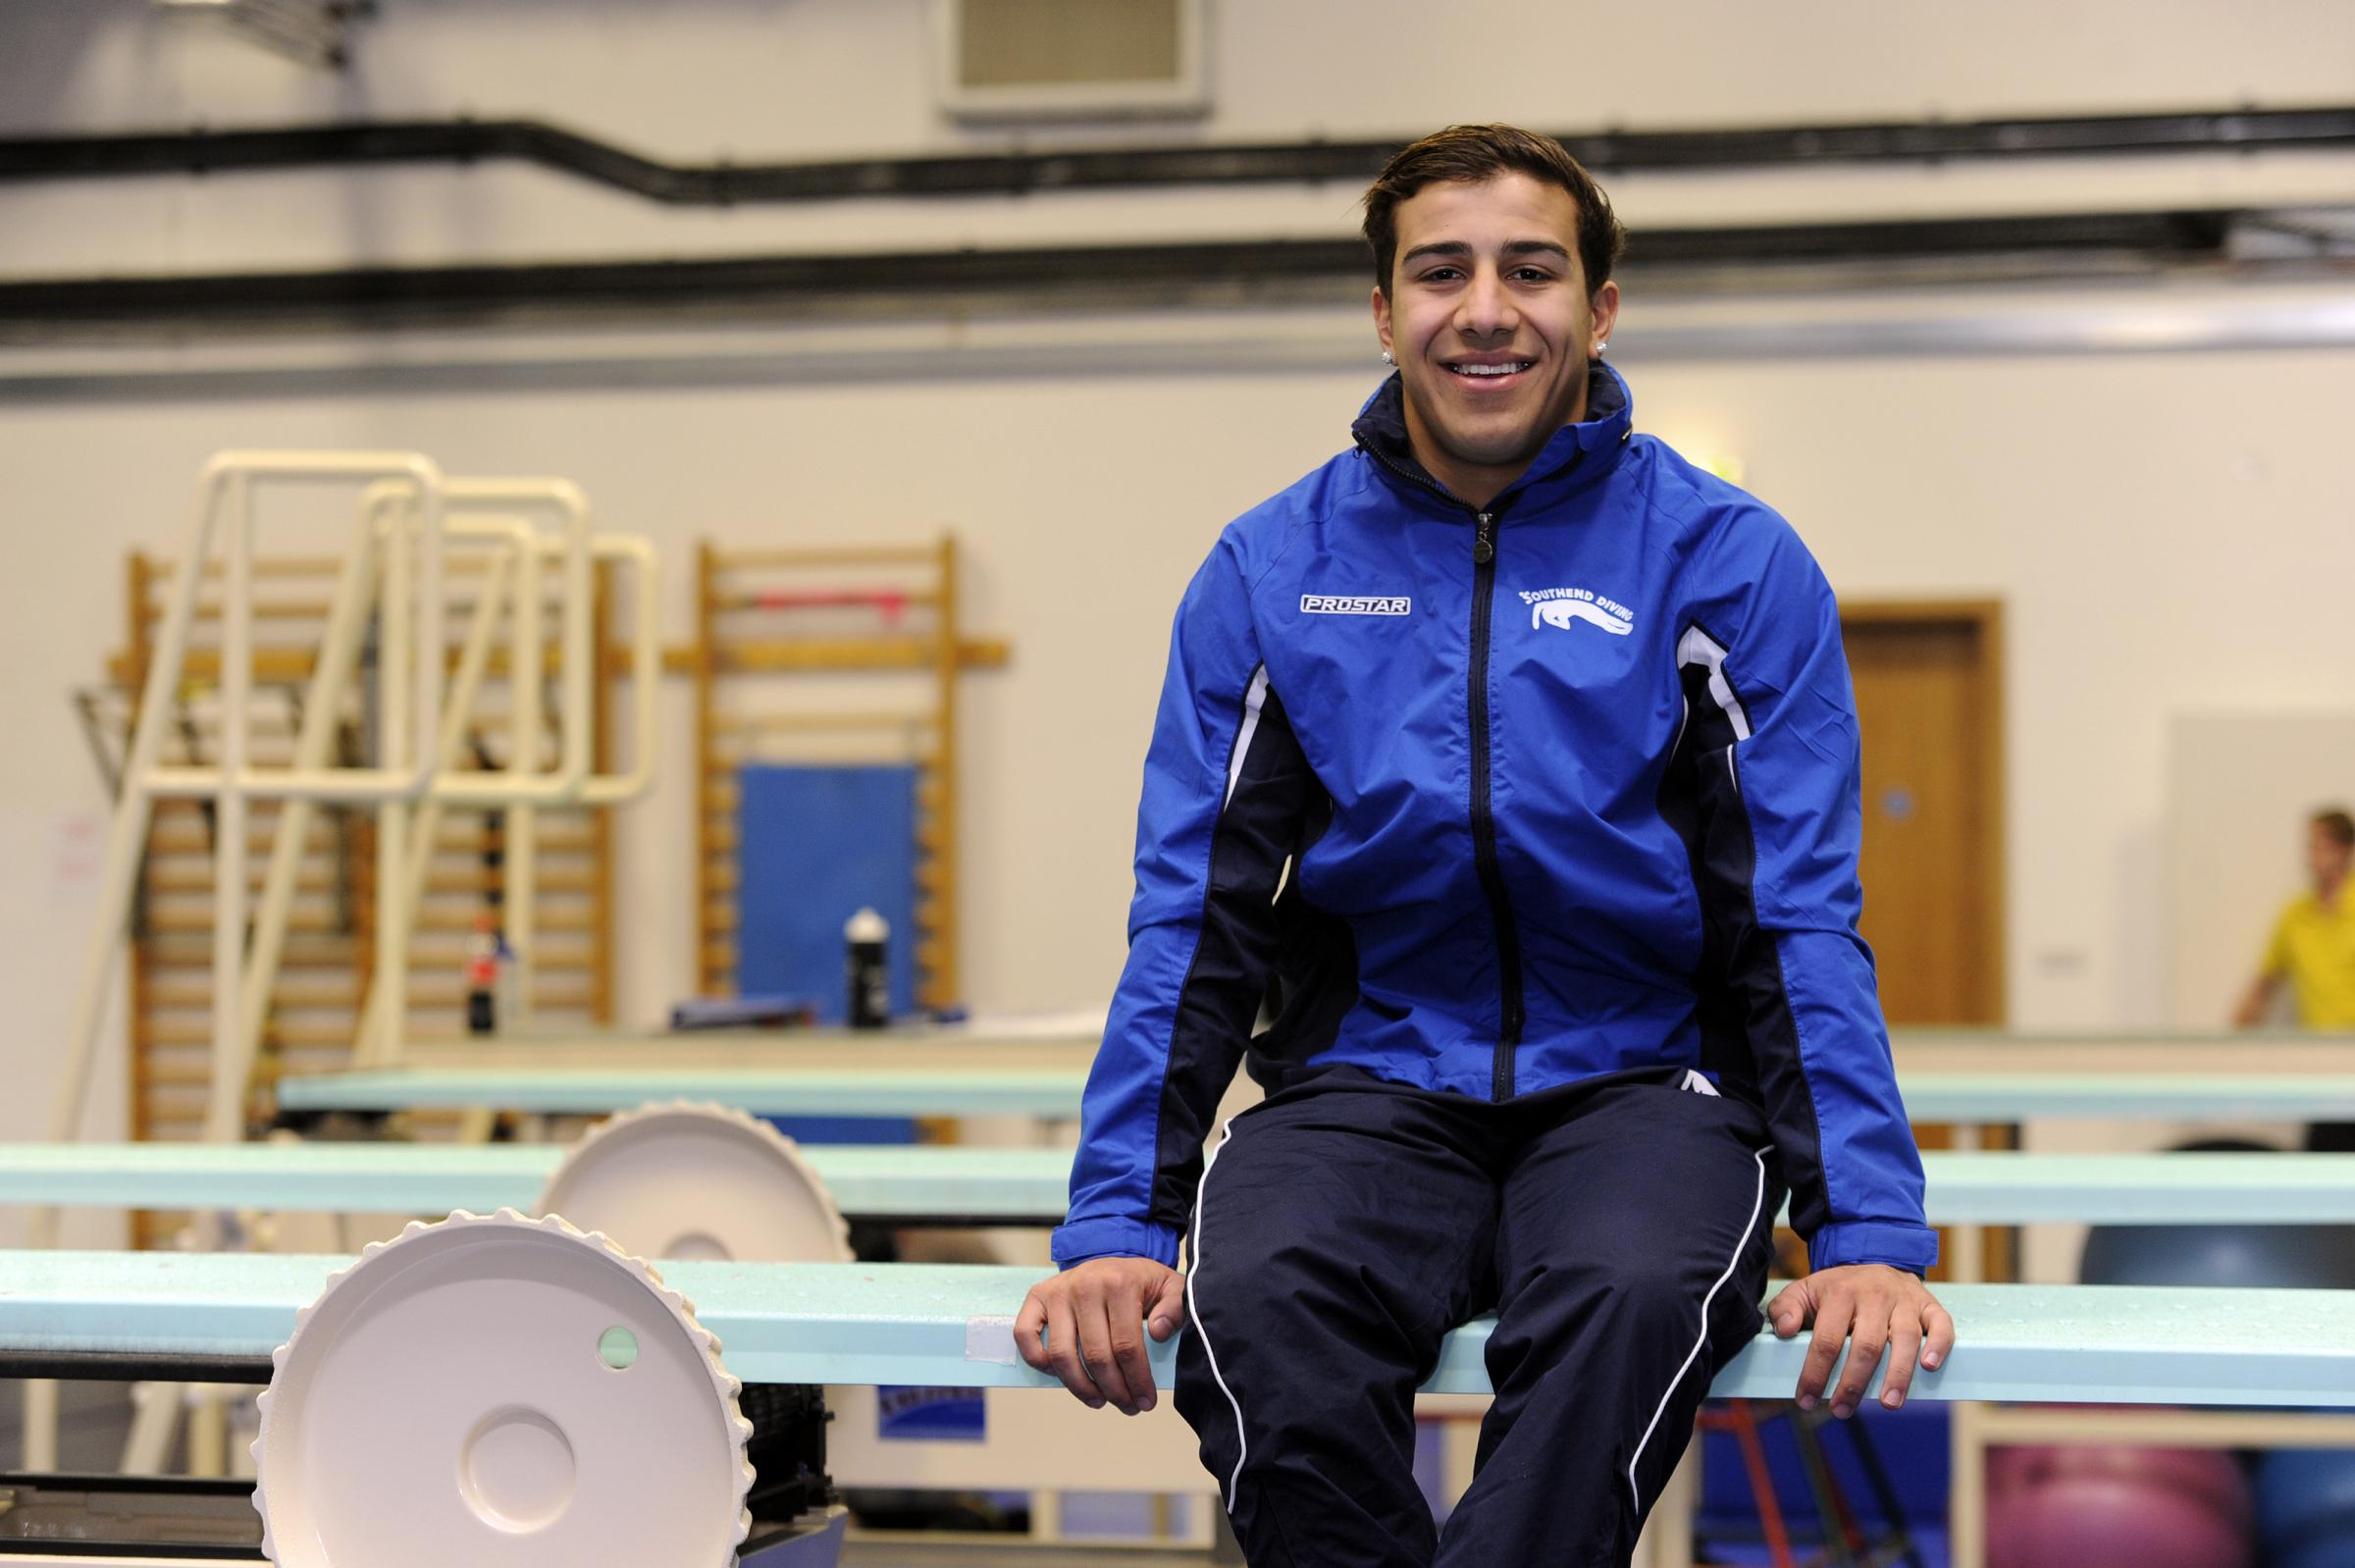 Proud moment – Duran Omer represented Great Britain at an international meet in Germany